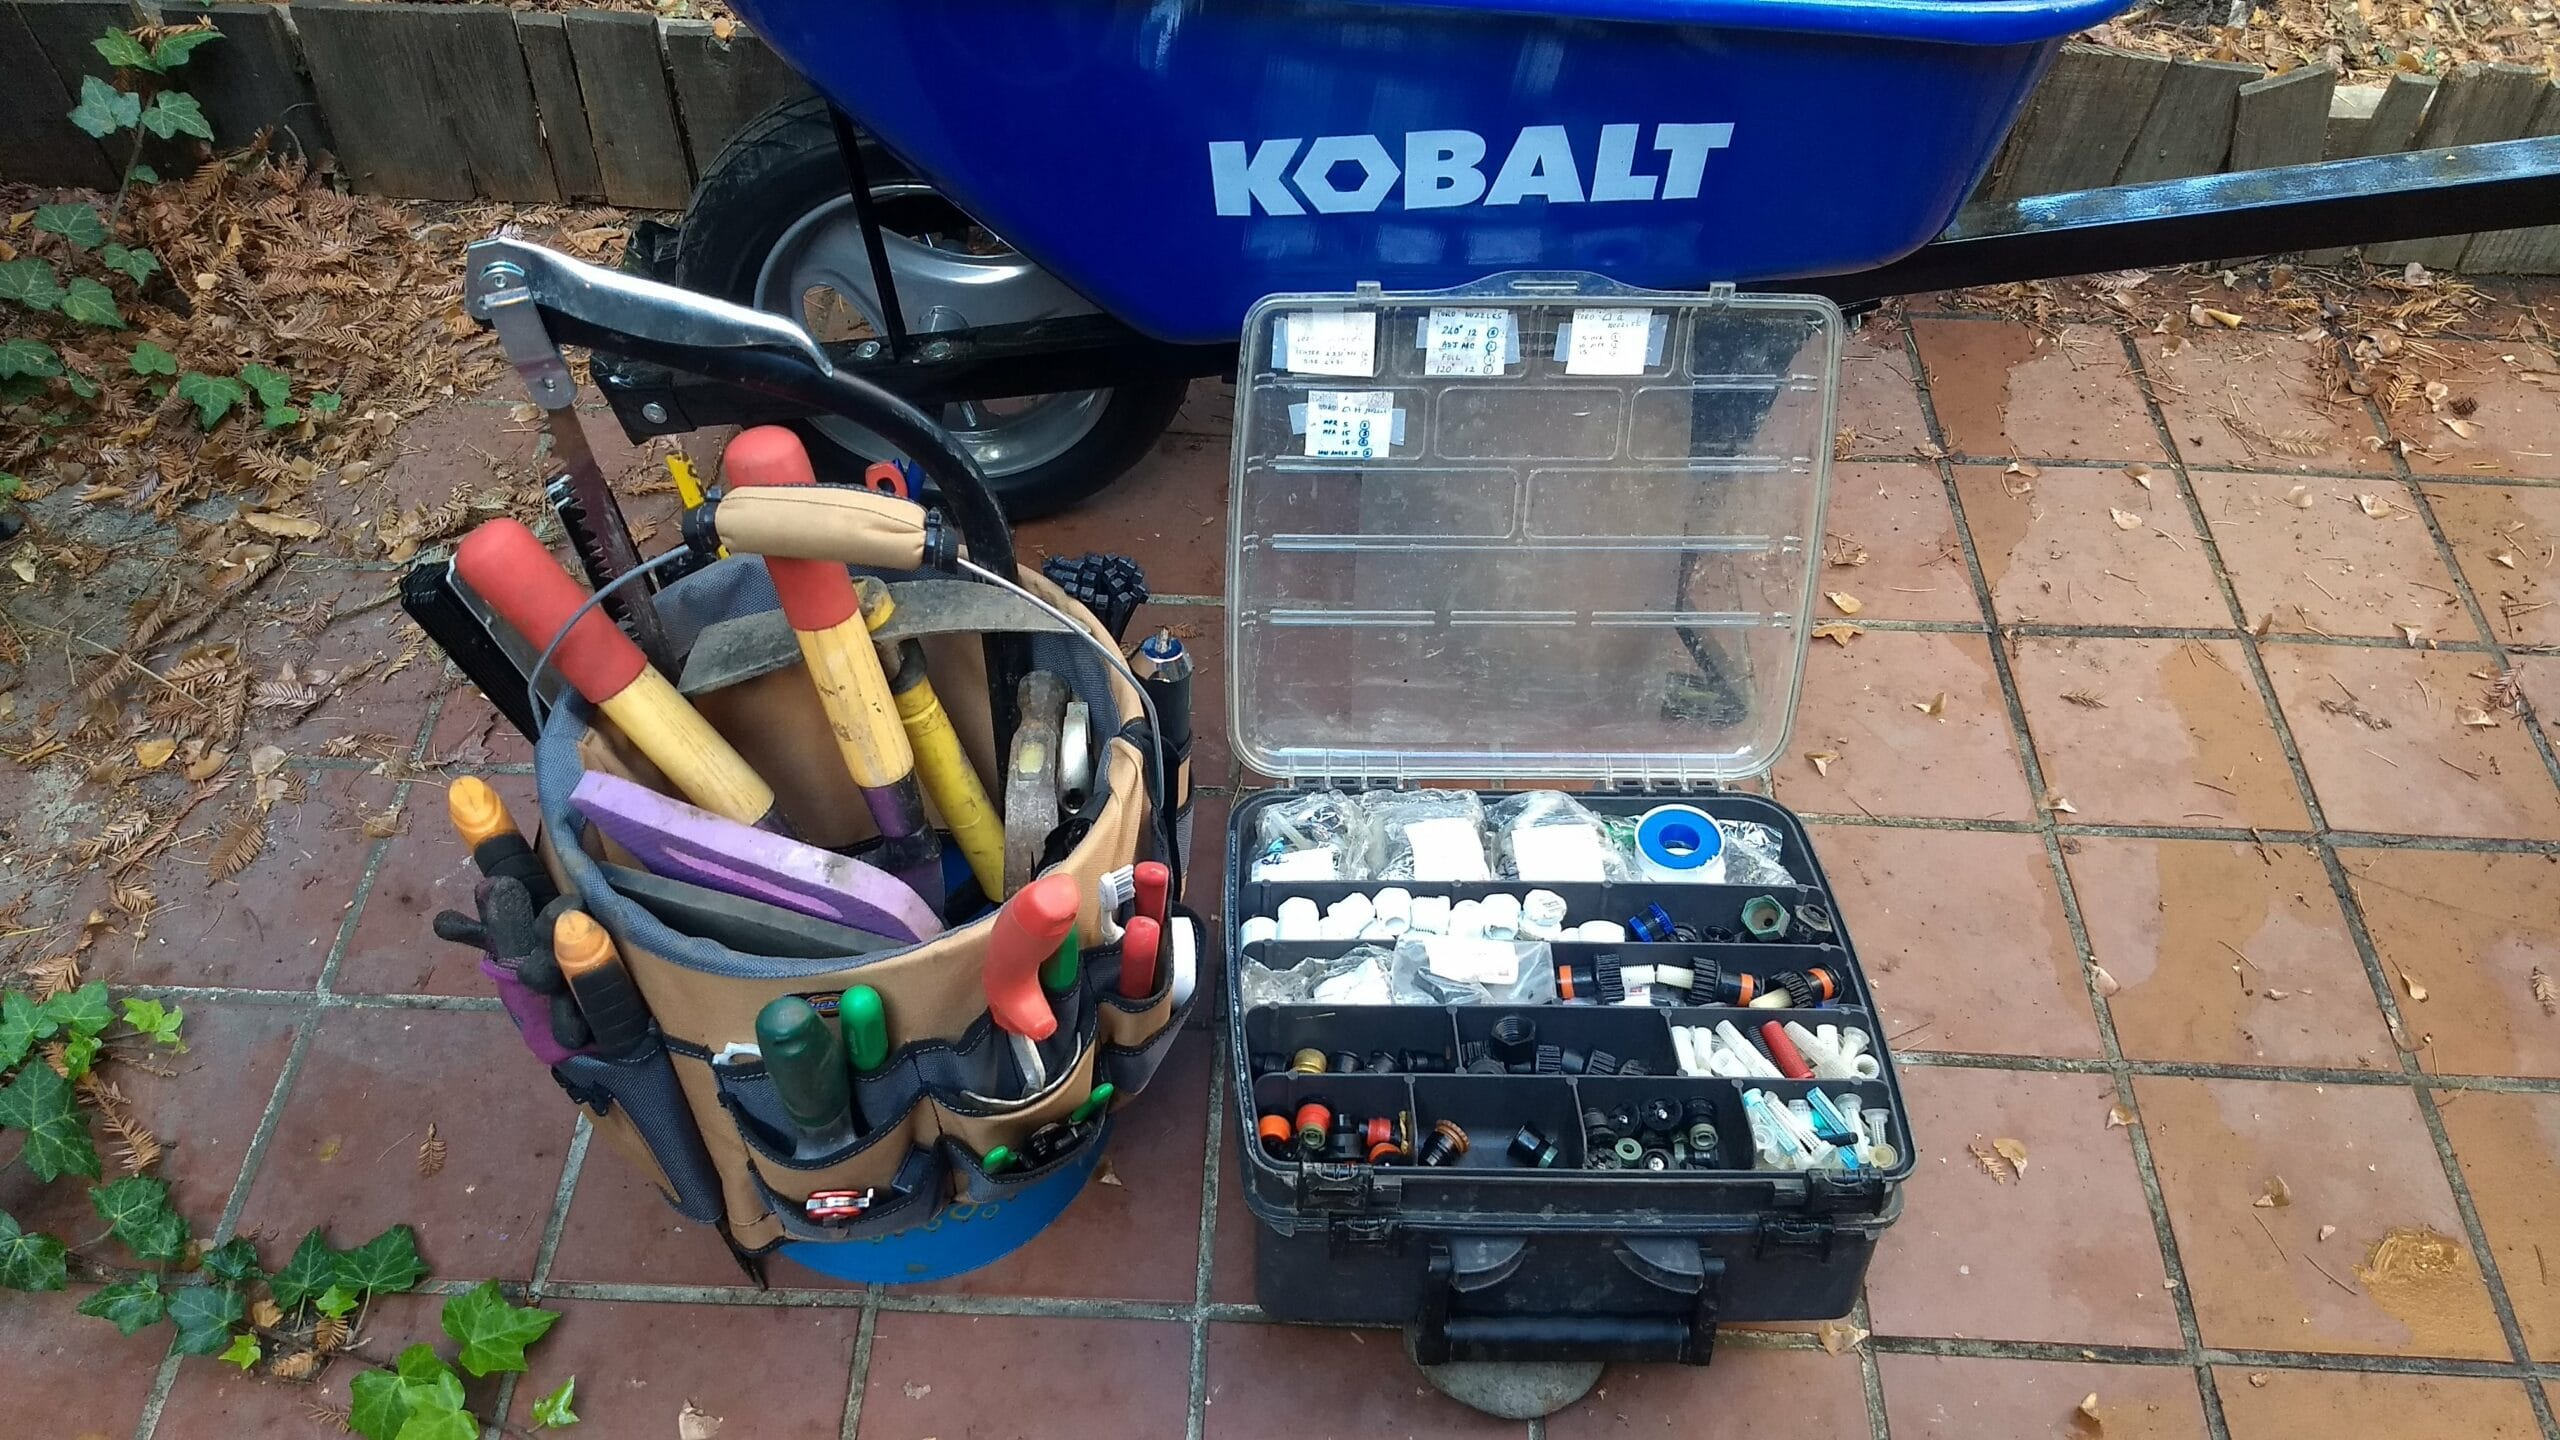 Recently acquired irrigation system tool and parts kit. Credit: Neal Gorenflo